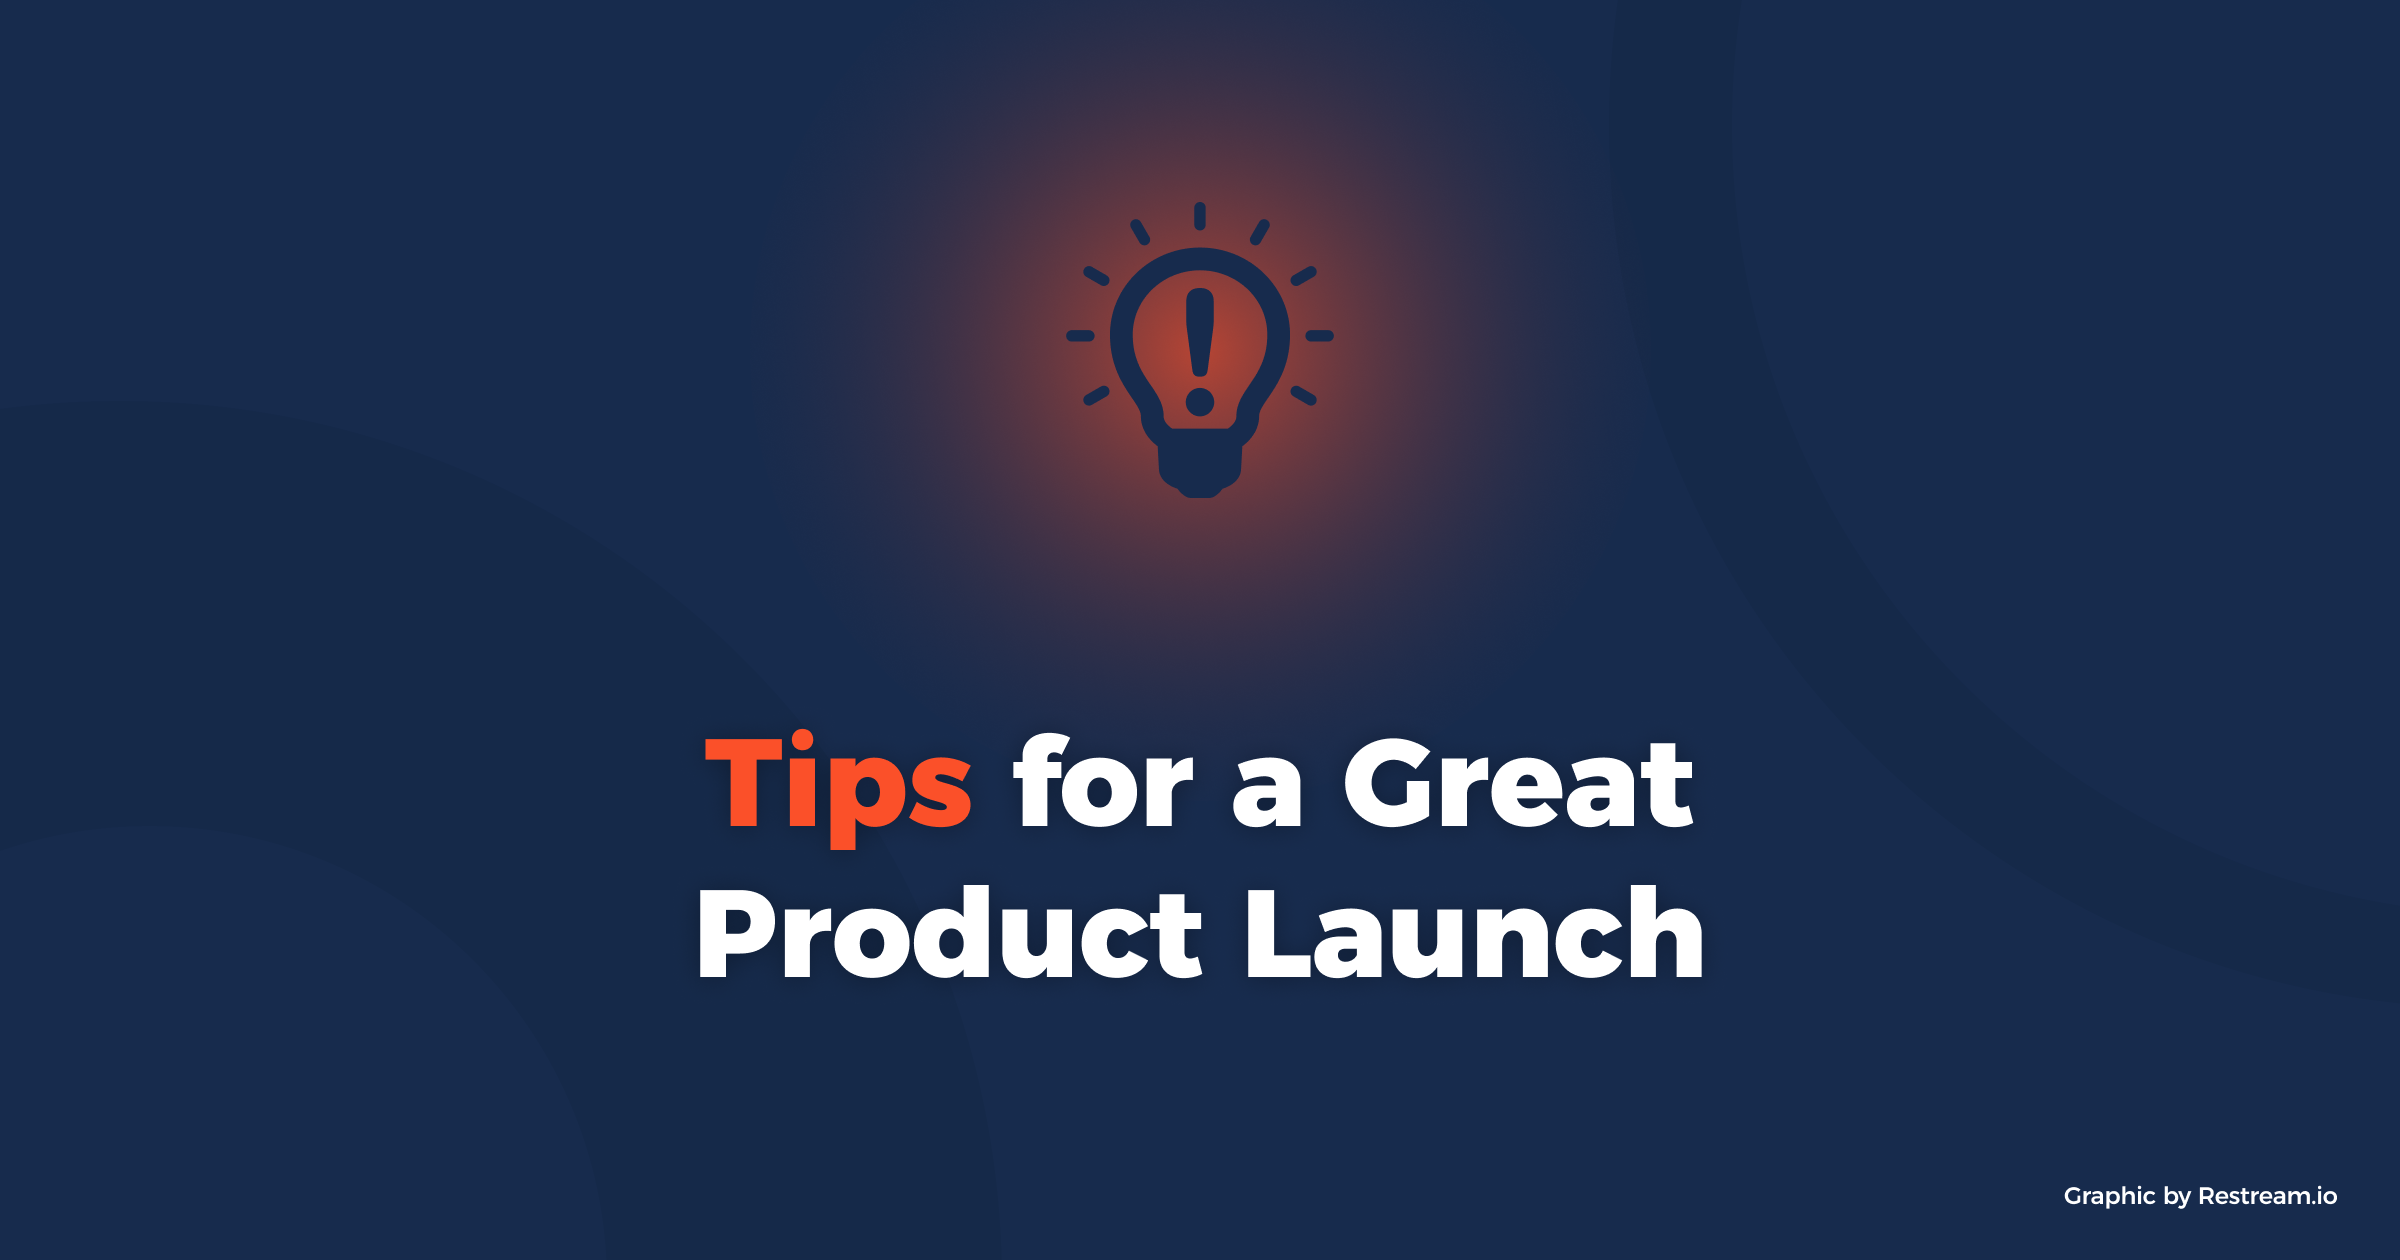 Tips for a Great Product Launch